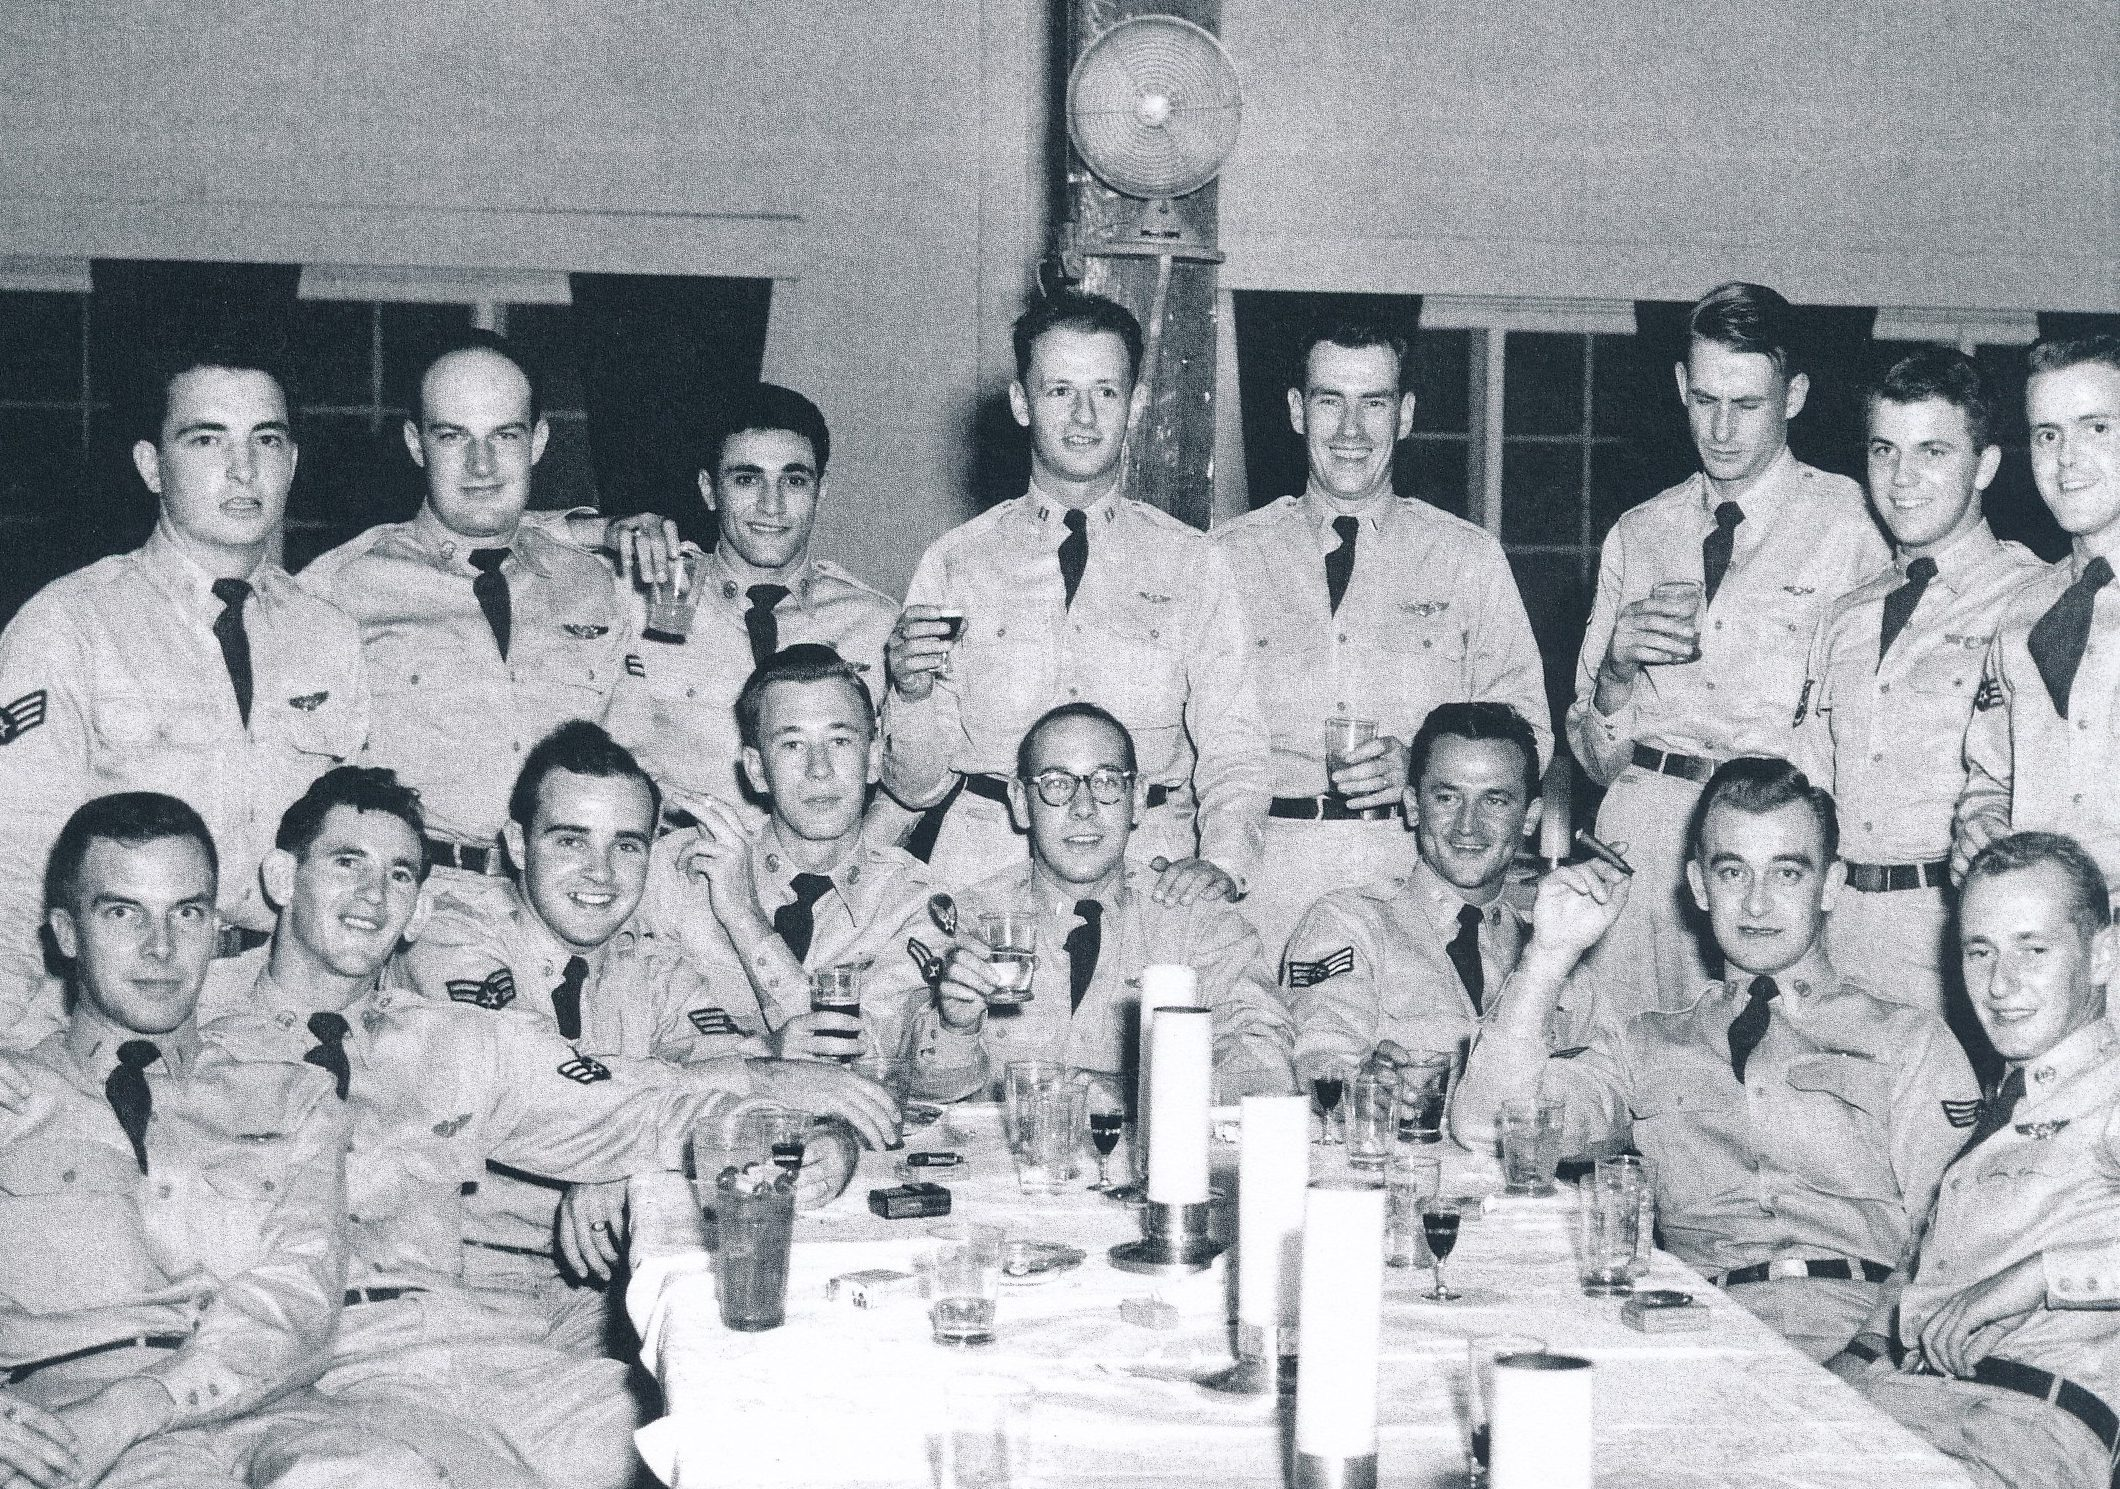 Liner Picture, Group of Service Men